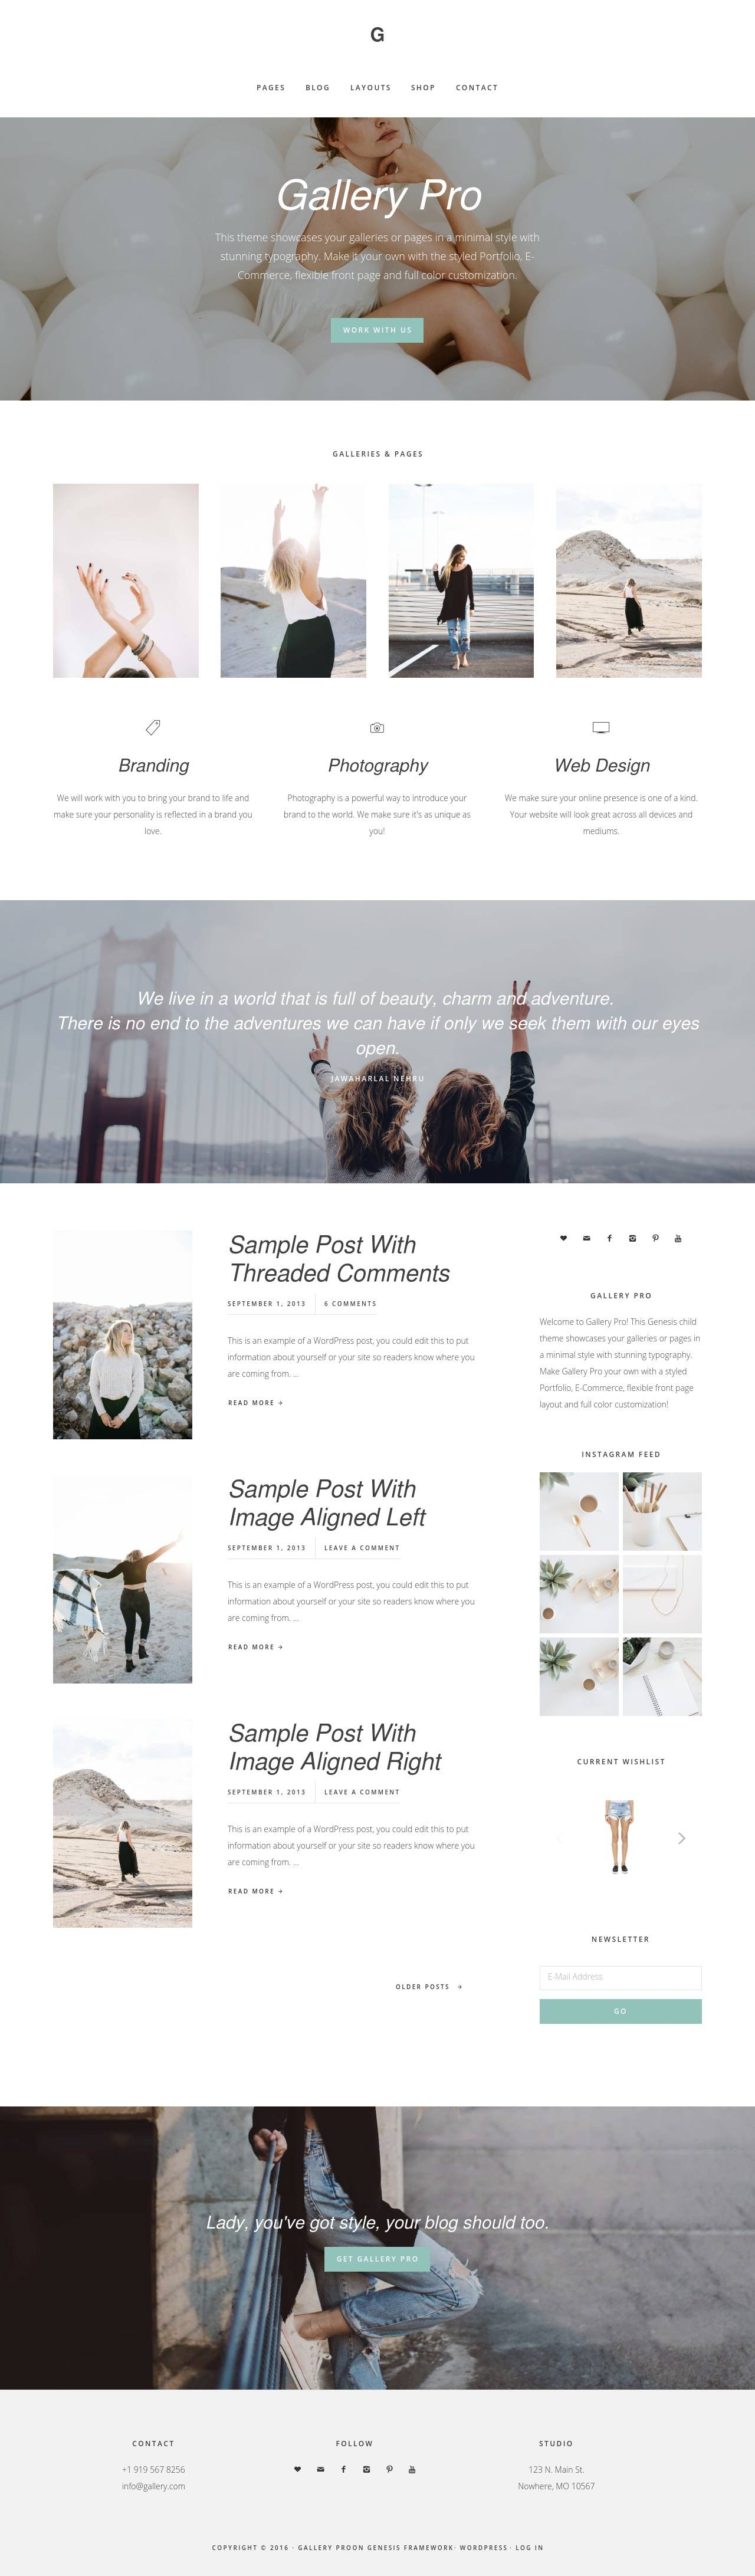 gallery pro studiopress wordpress theme 01 - gallery-pro-studiopress-wordpress-theme-01